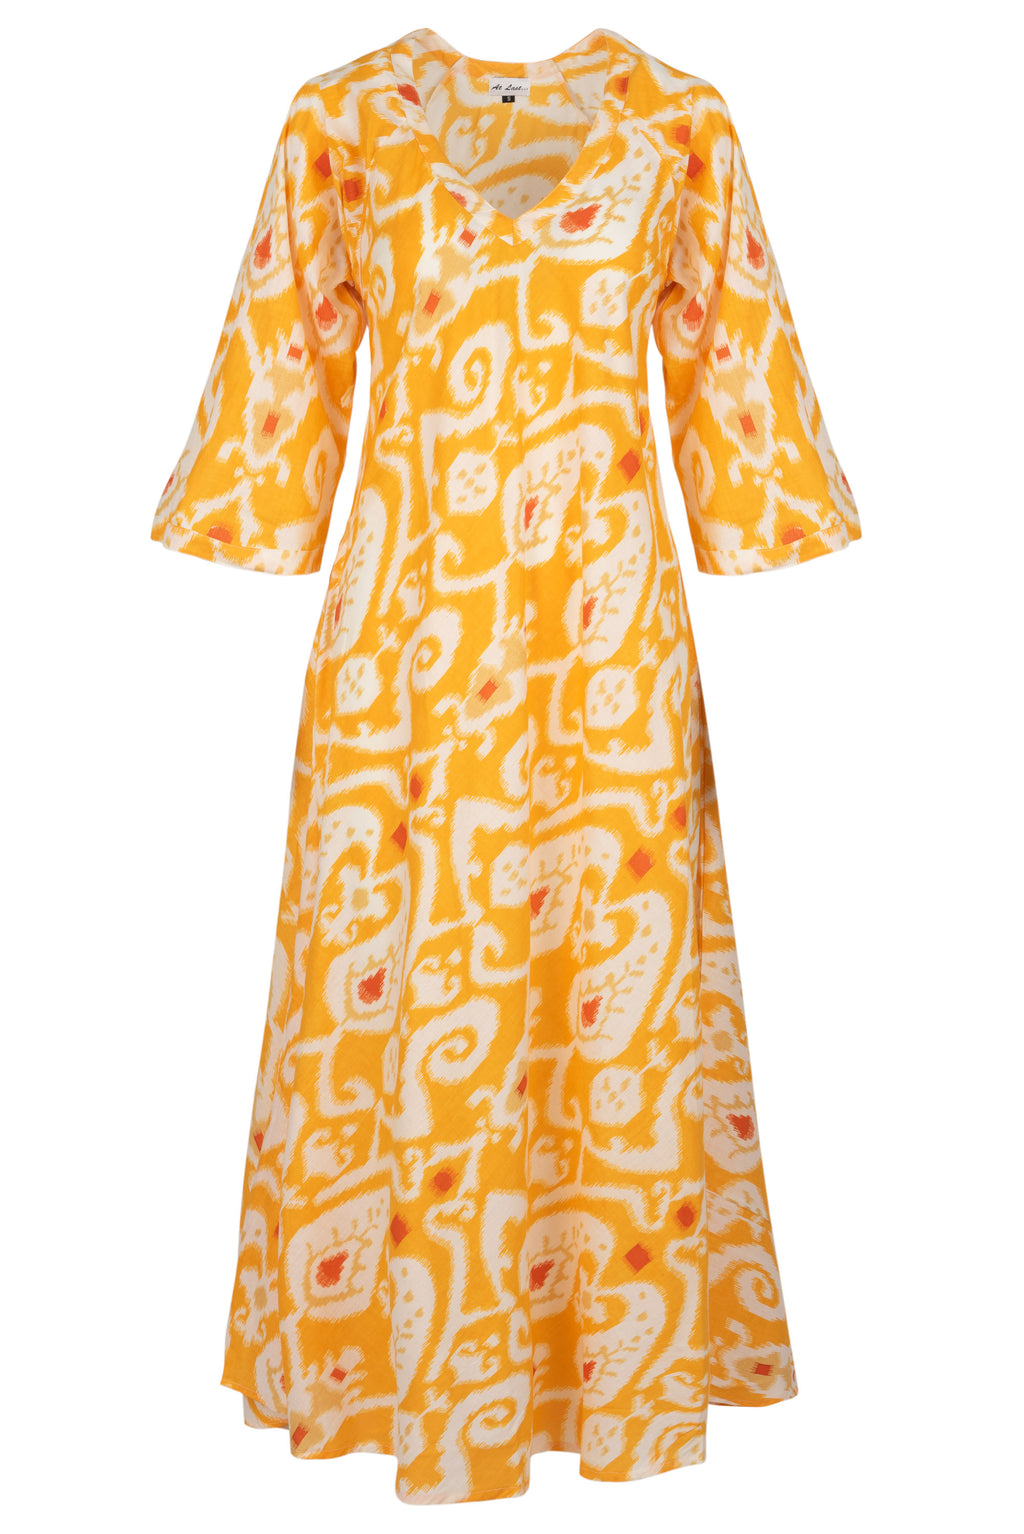 Anna Cotton Dress- Yellow Ikat